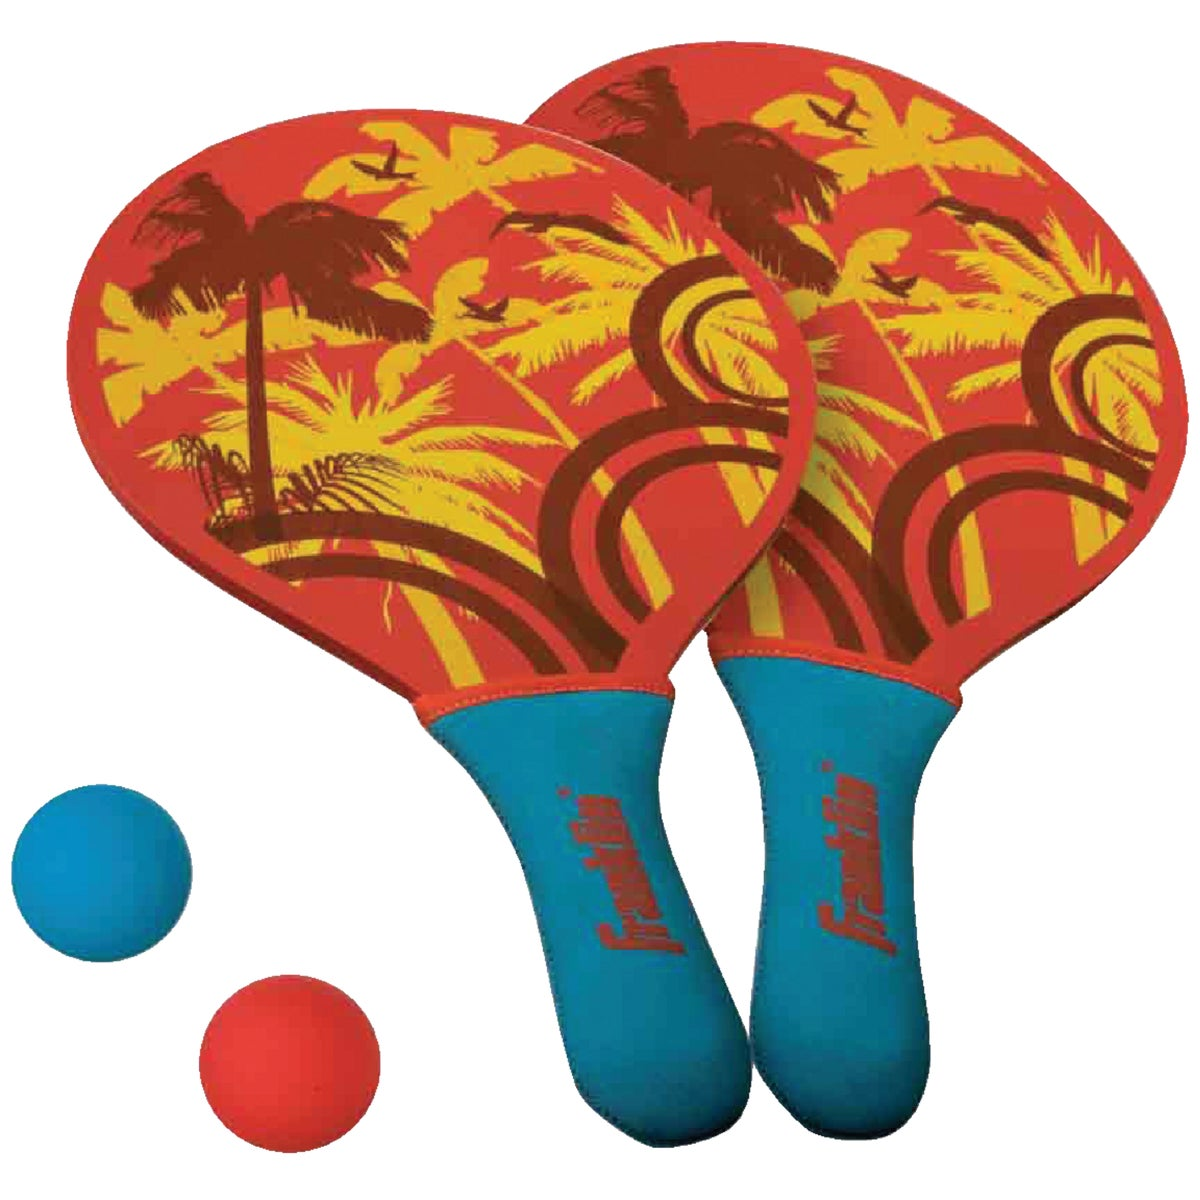 GRIP RT PADDLEBALL SET - 52604 by Franklin Sports